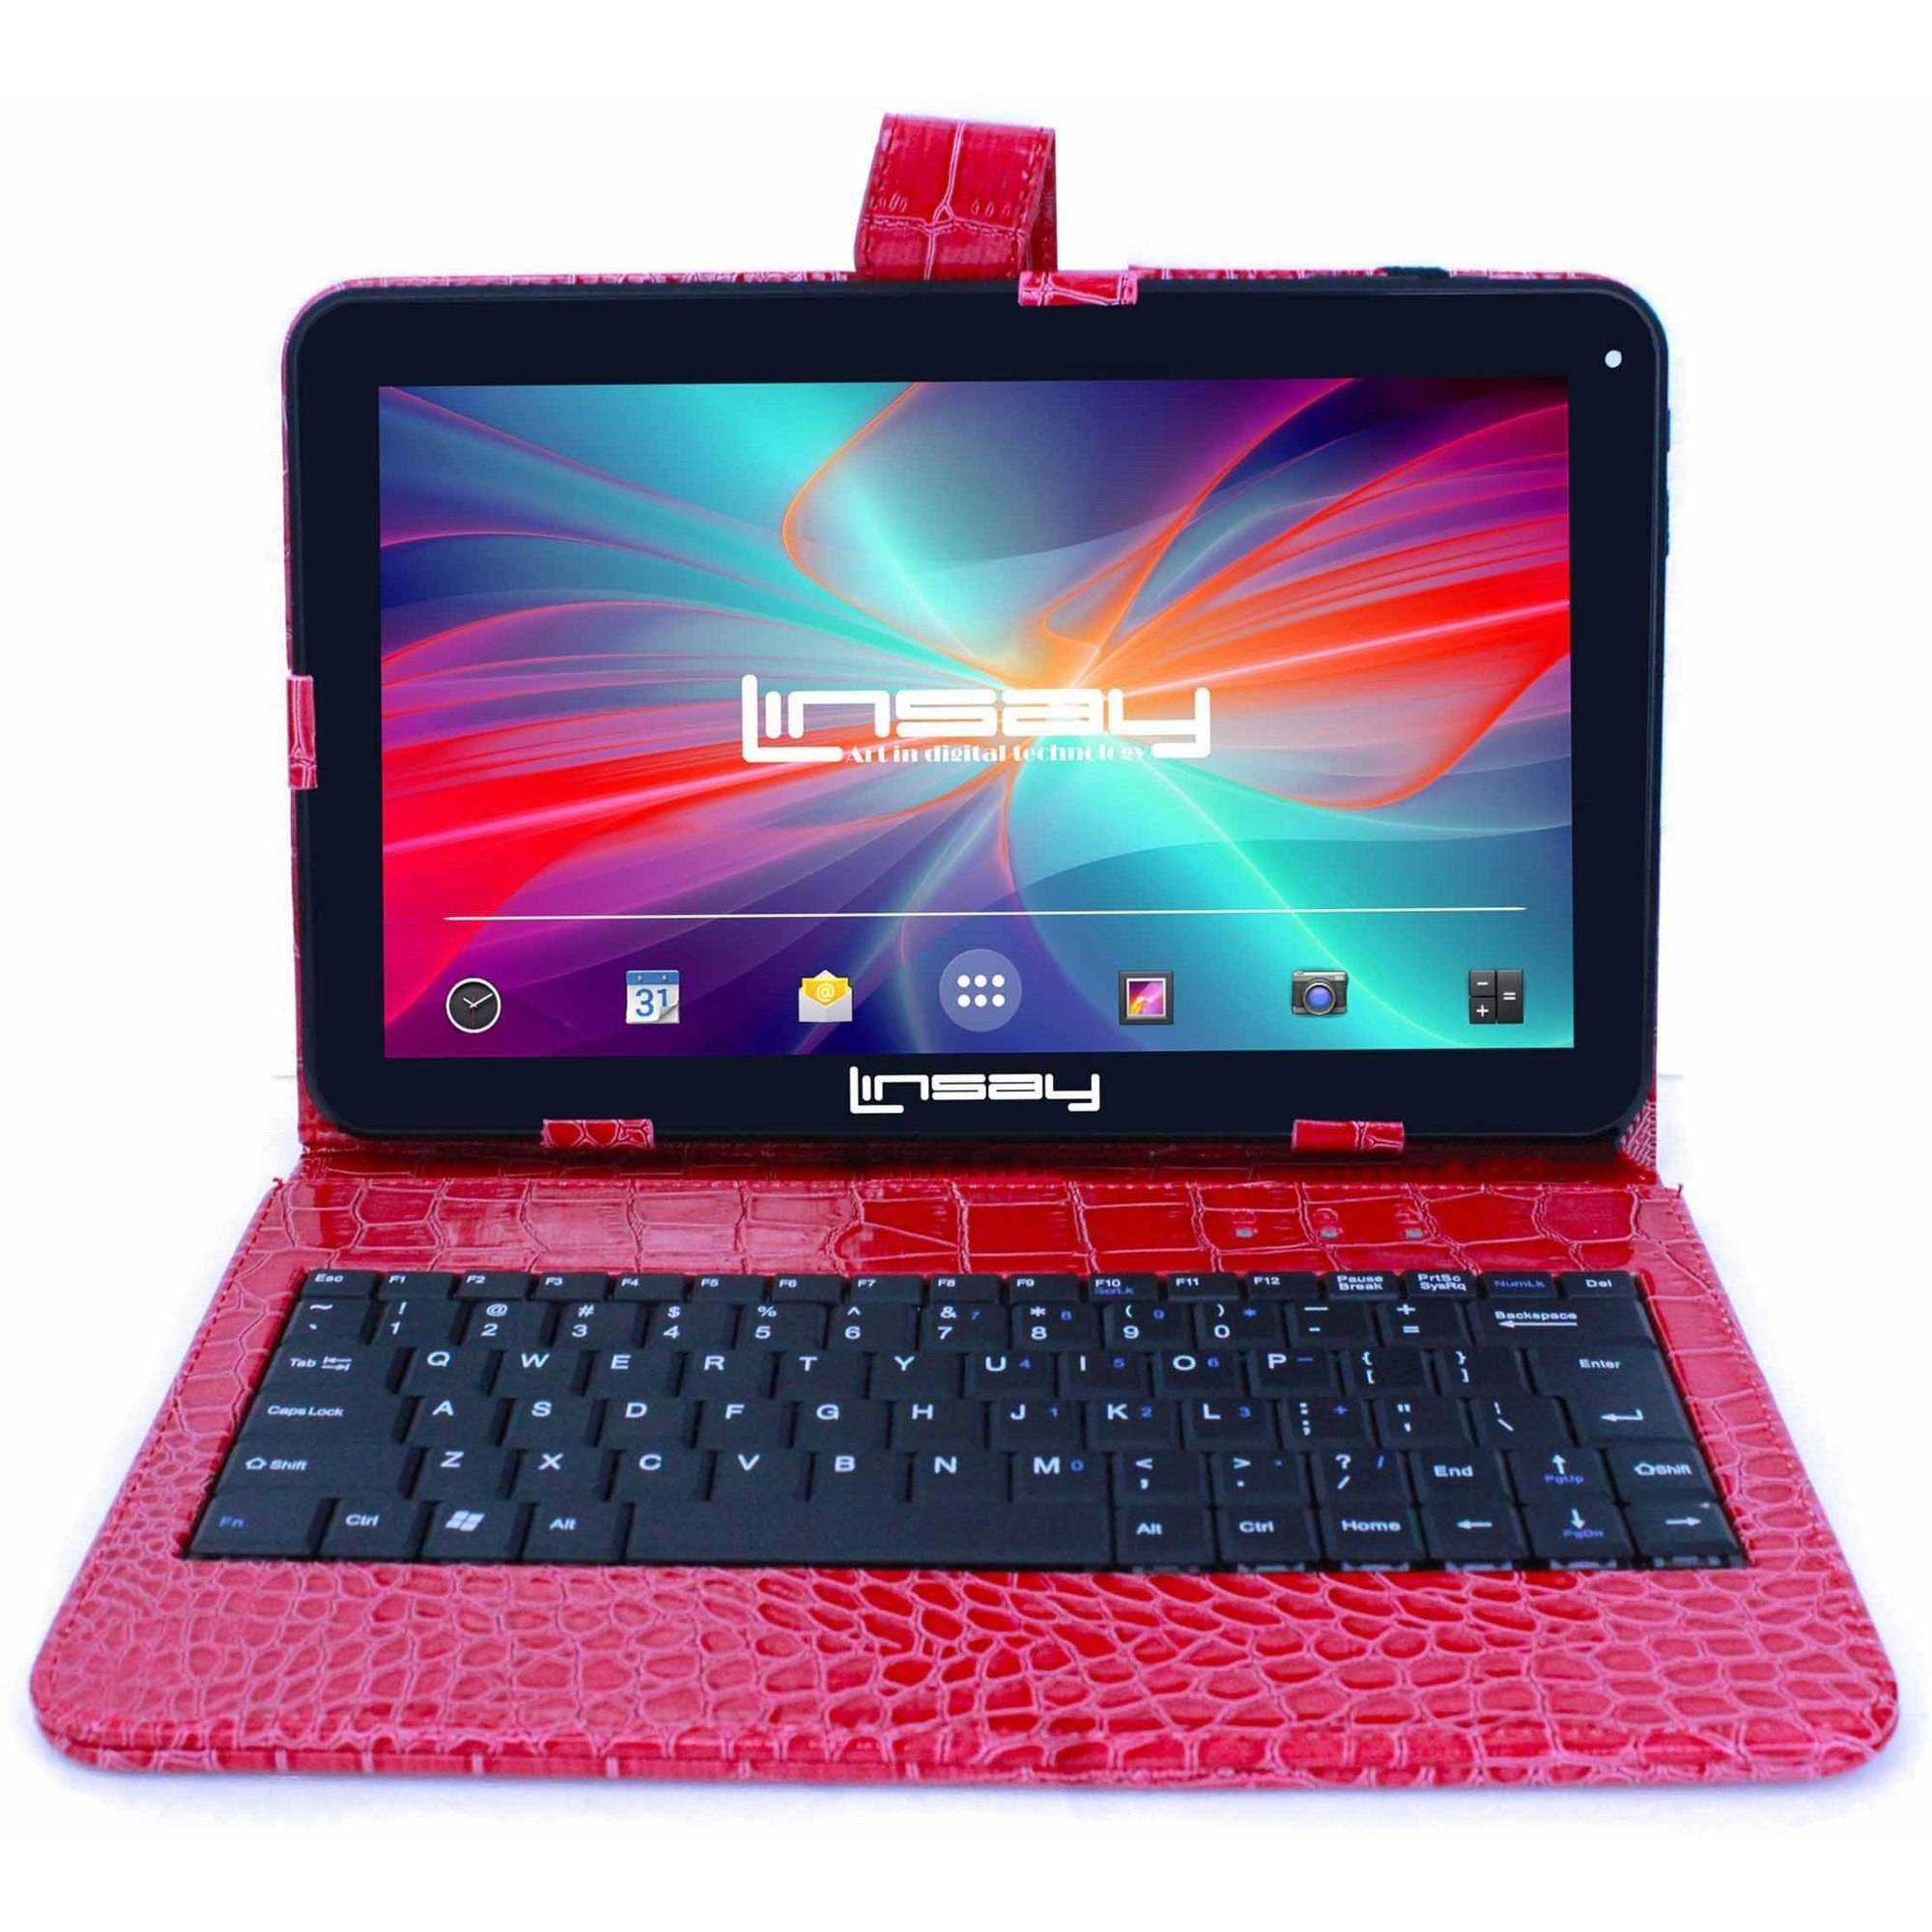 "LINSAY F10XHDBKCO with WiFi 10.1"" Touchscreen Tablet PC Featuring Android 4.4 (KitKat) Operating System"